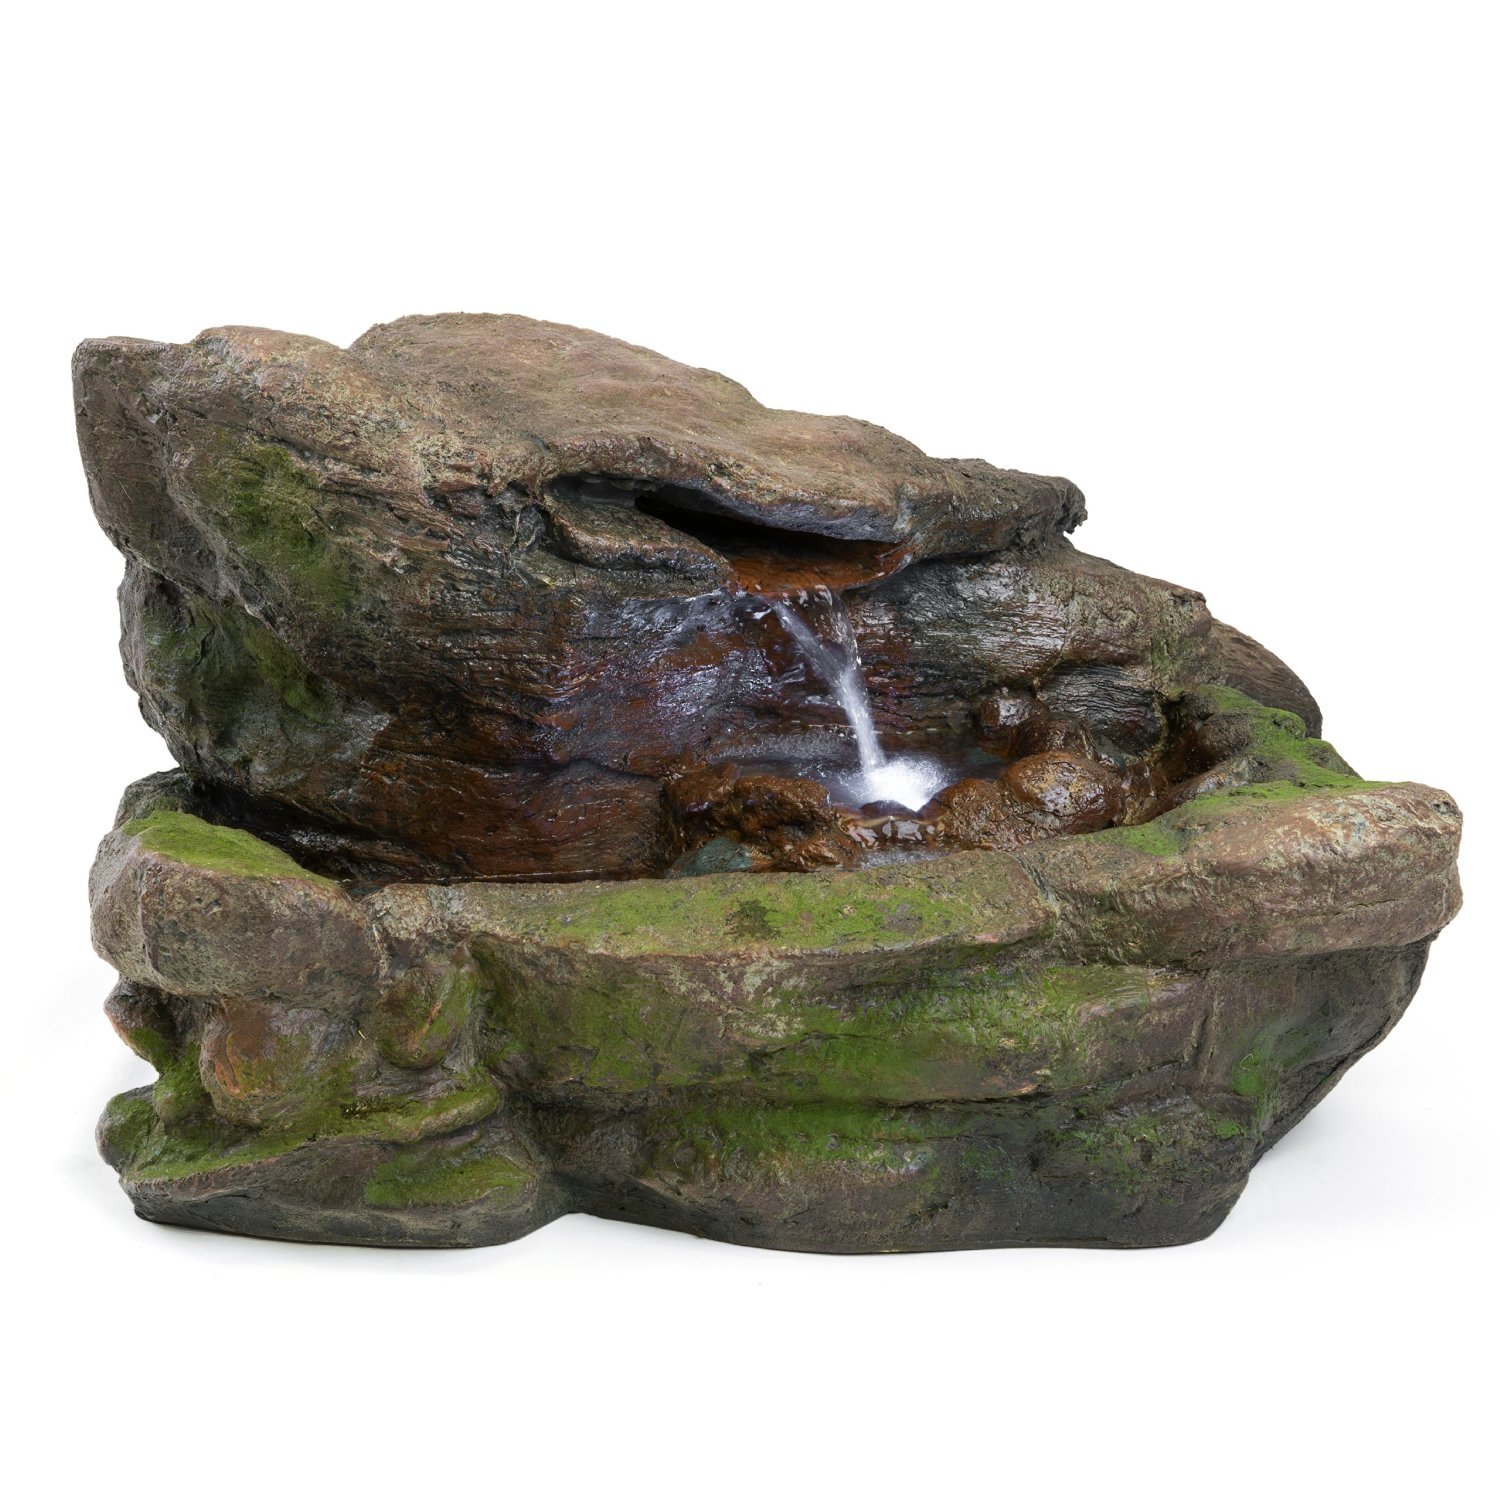 Kimball Rock Water Fountain: Outdoor Water Feature for Gardens & Patios. Original Design Includes LED Lights. by Harmony Fountains